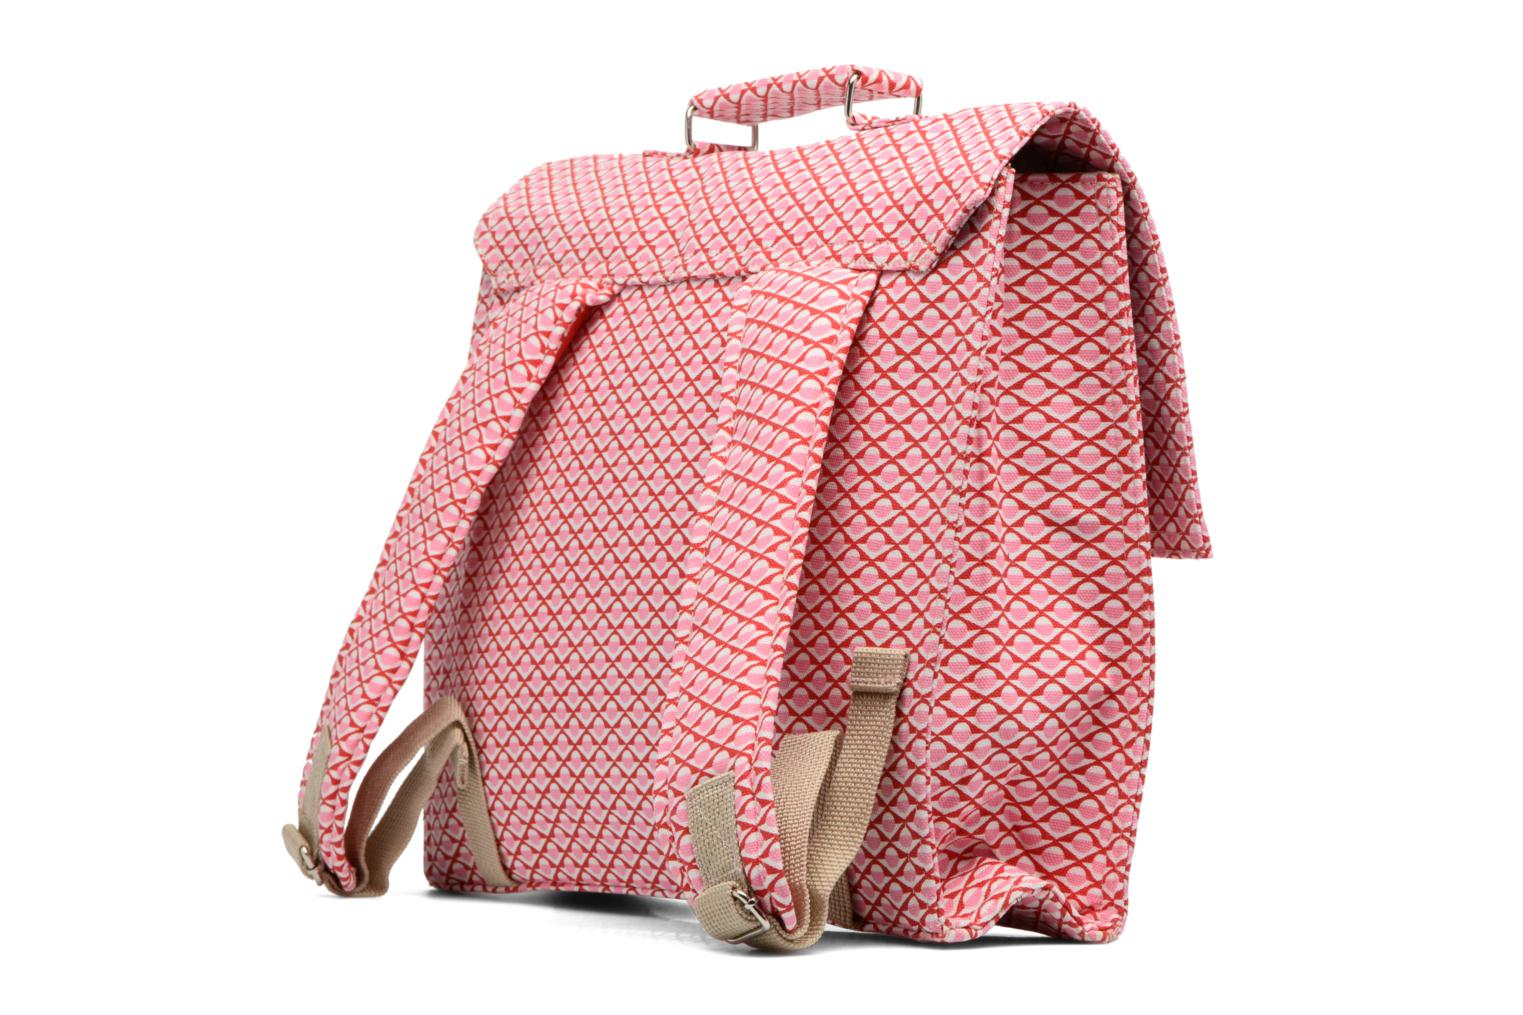 Scolaire Bakker Made With Love Chine 37cm Rose vue droite